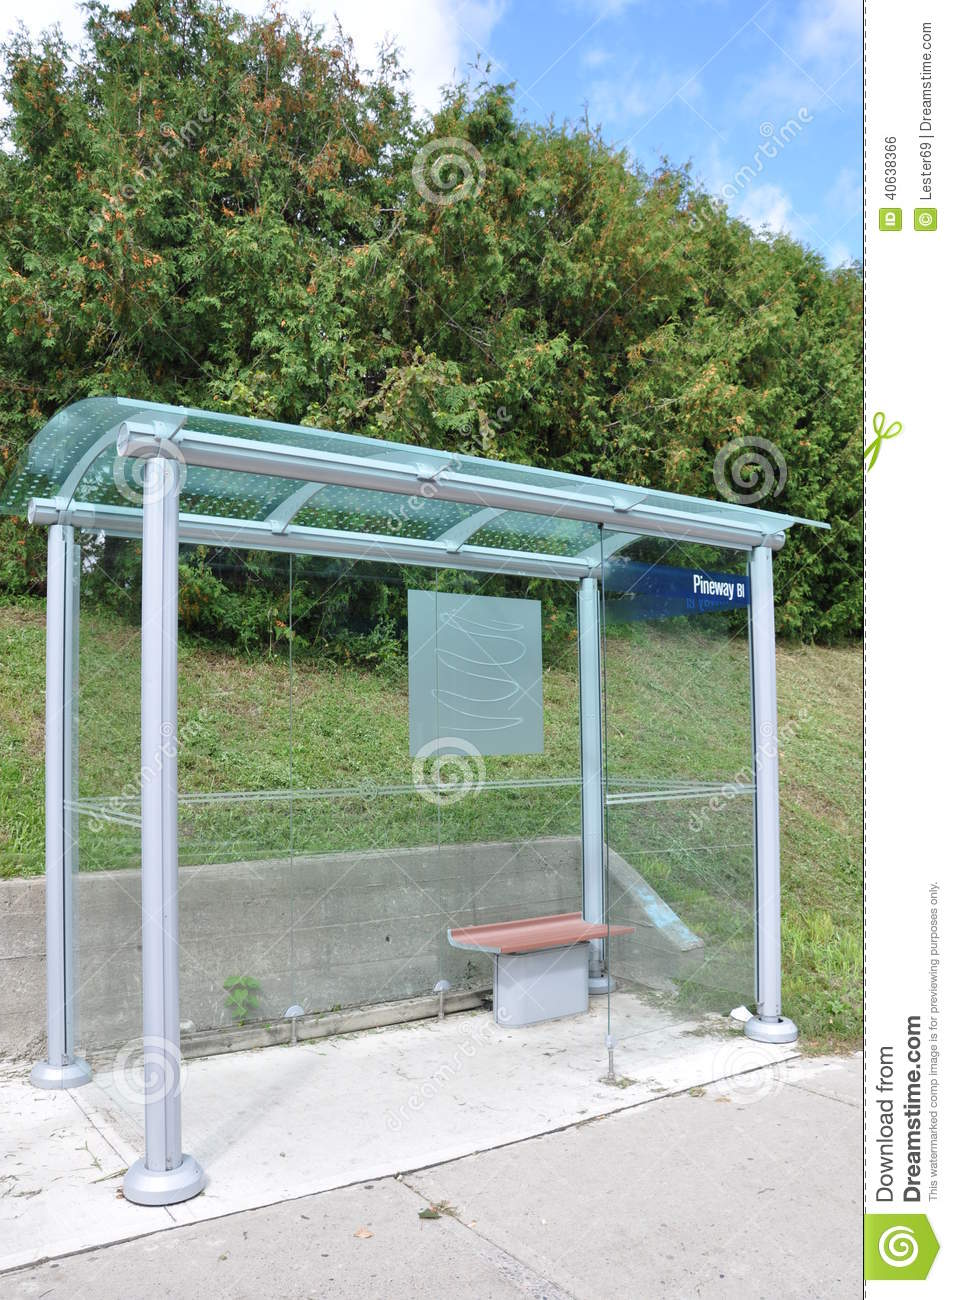 ^ Glass Waiting Shed Stock Photo - Image: 40638366